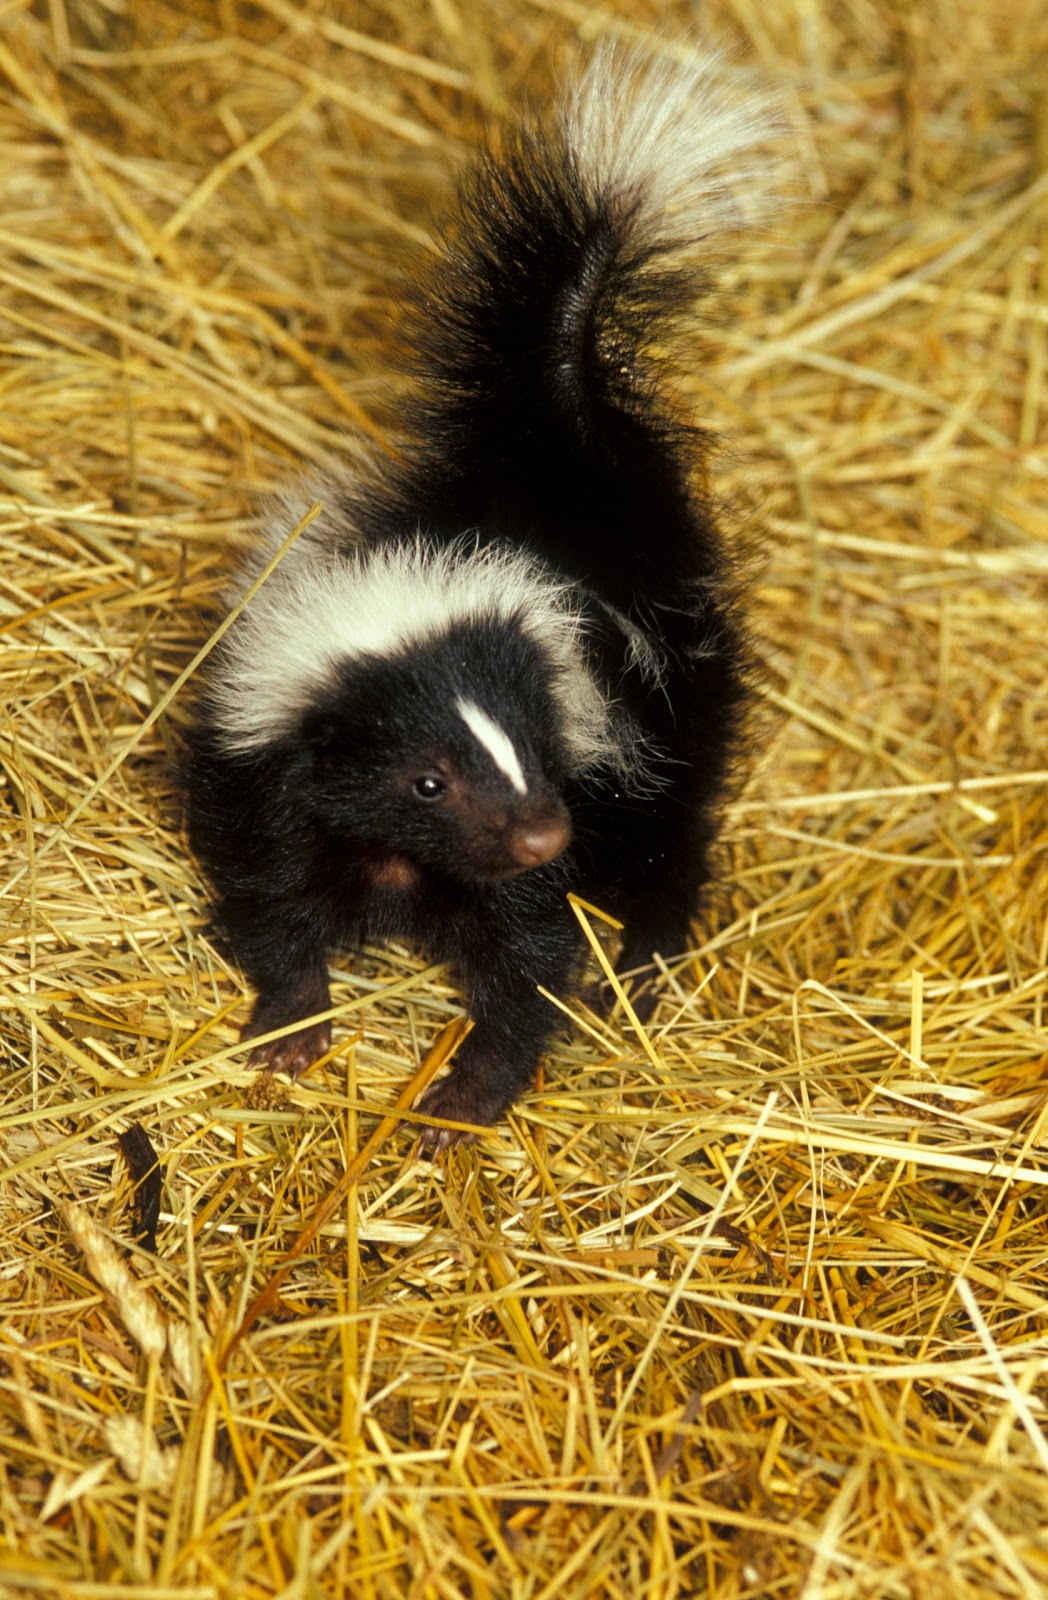 kentucky native plant and wildlife you got your dead skunk in the